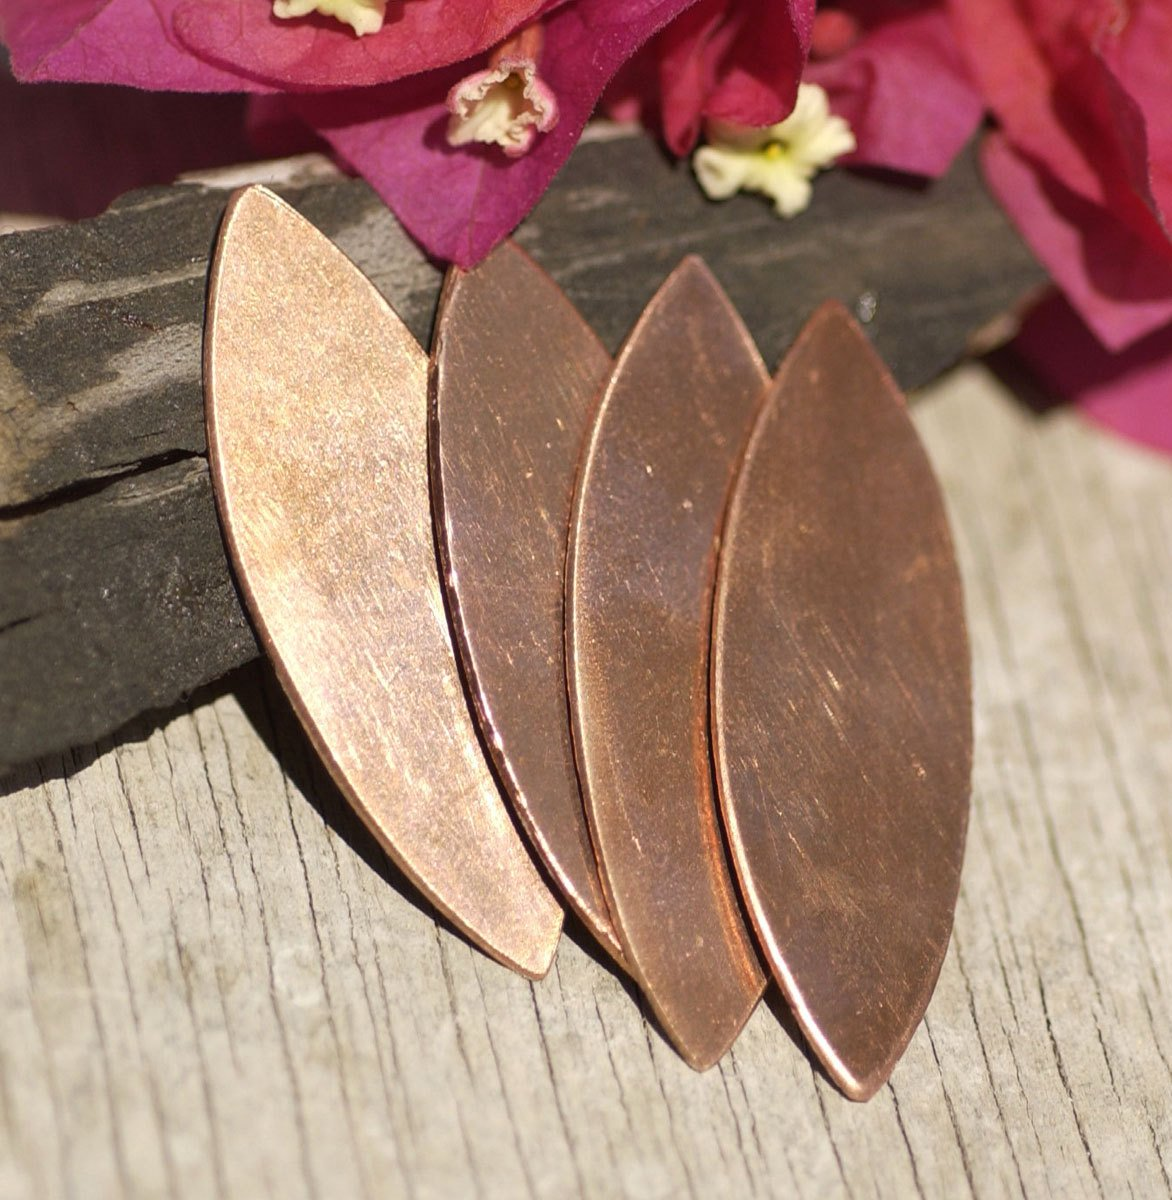 Copper or Nickel Silver Eye Pointed Oval Blank 39mm x 13mm 20g Shape Cutout for Enameling Stamping Texturing  4 pieces